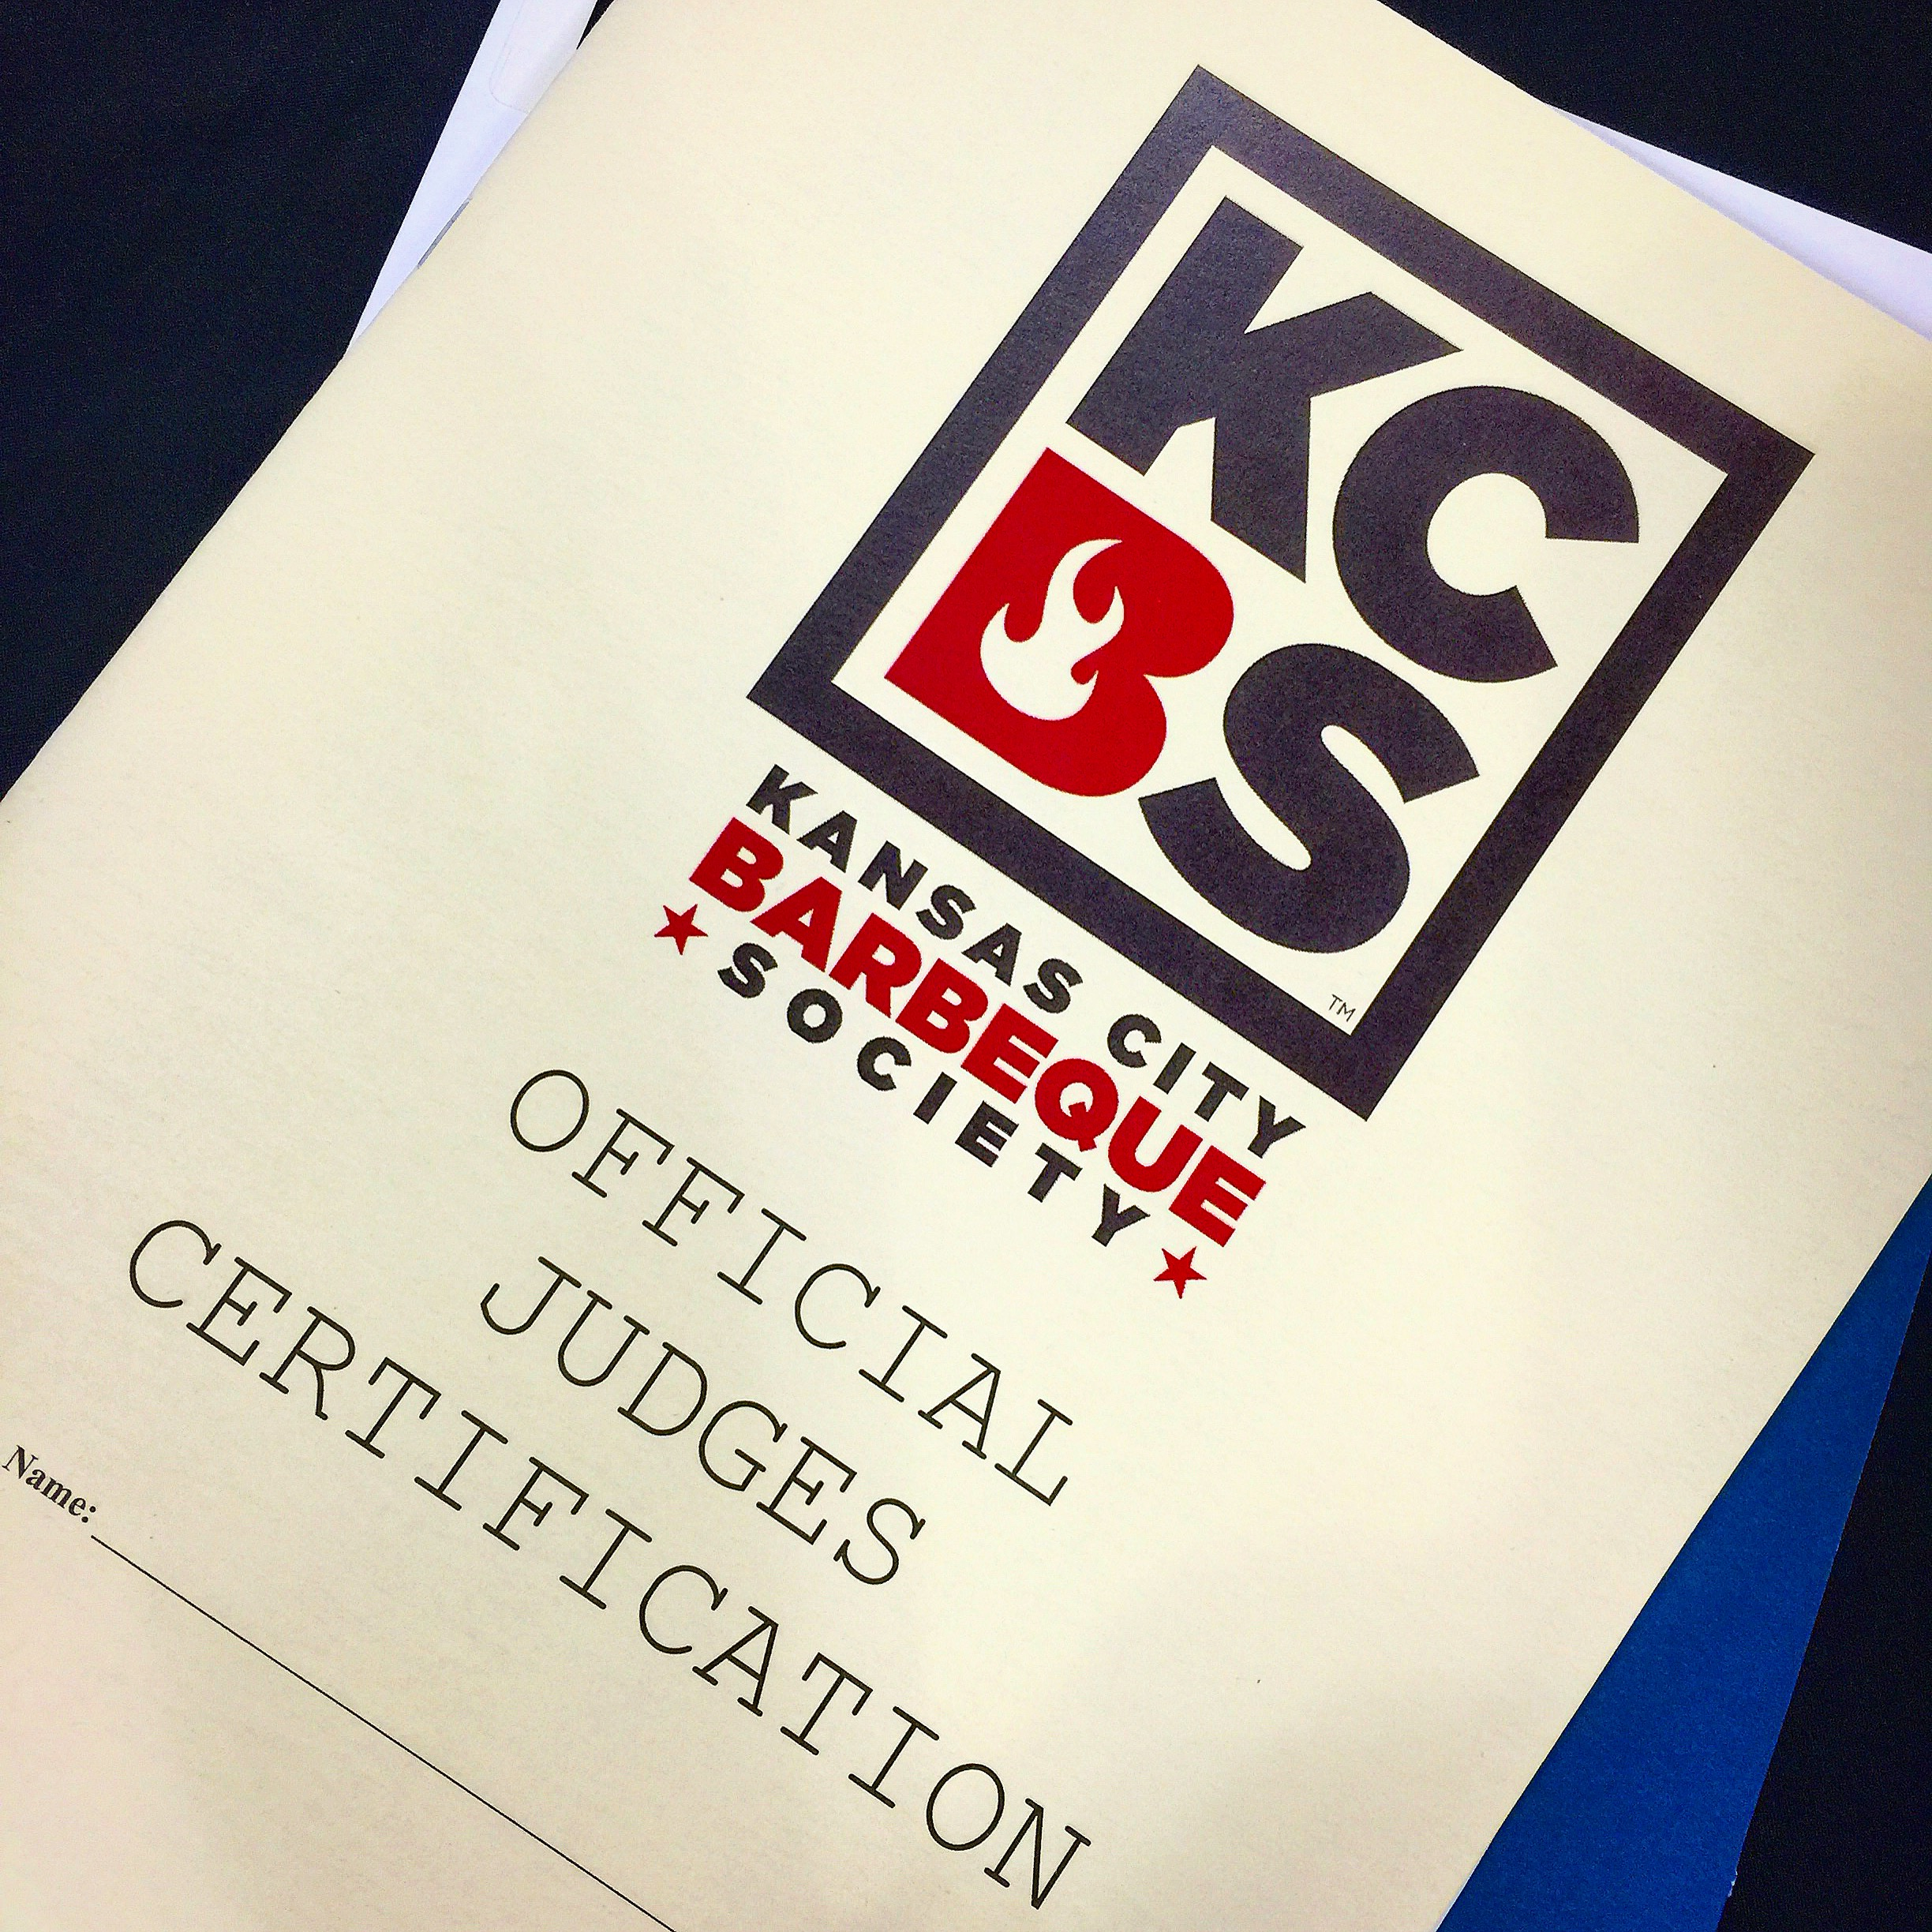 KC BBQ certification